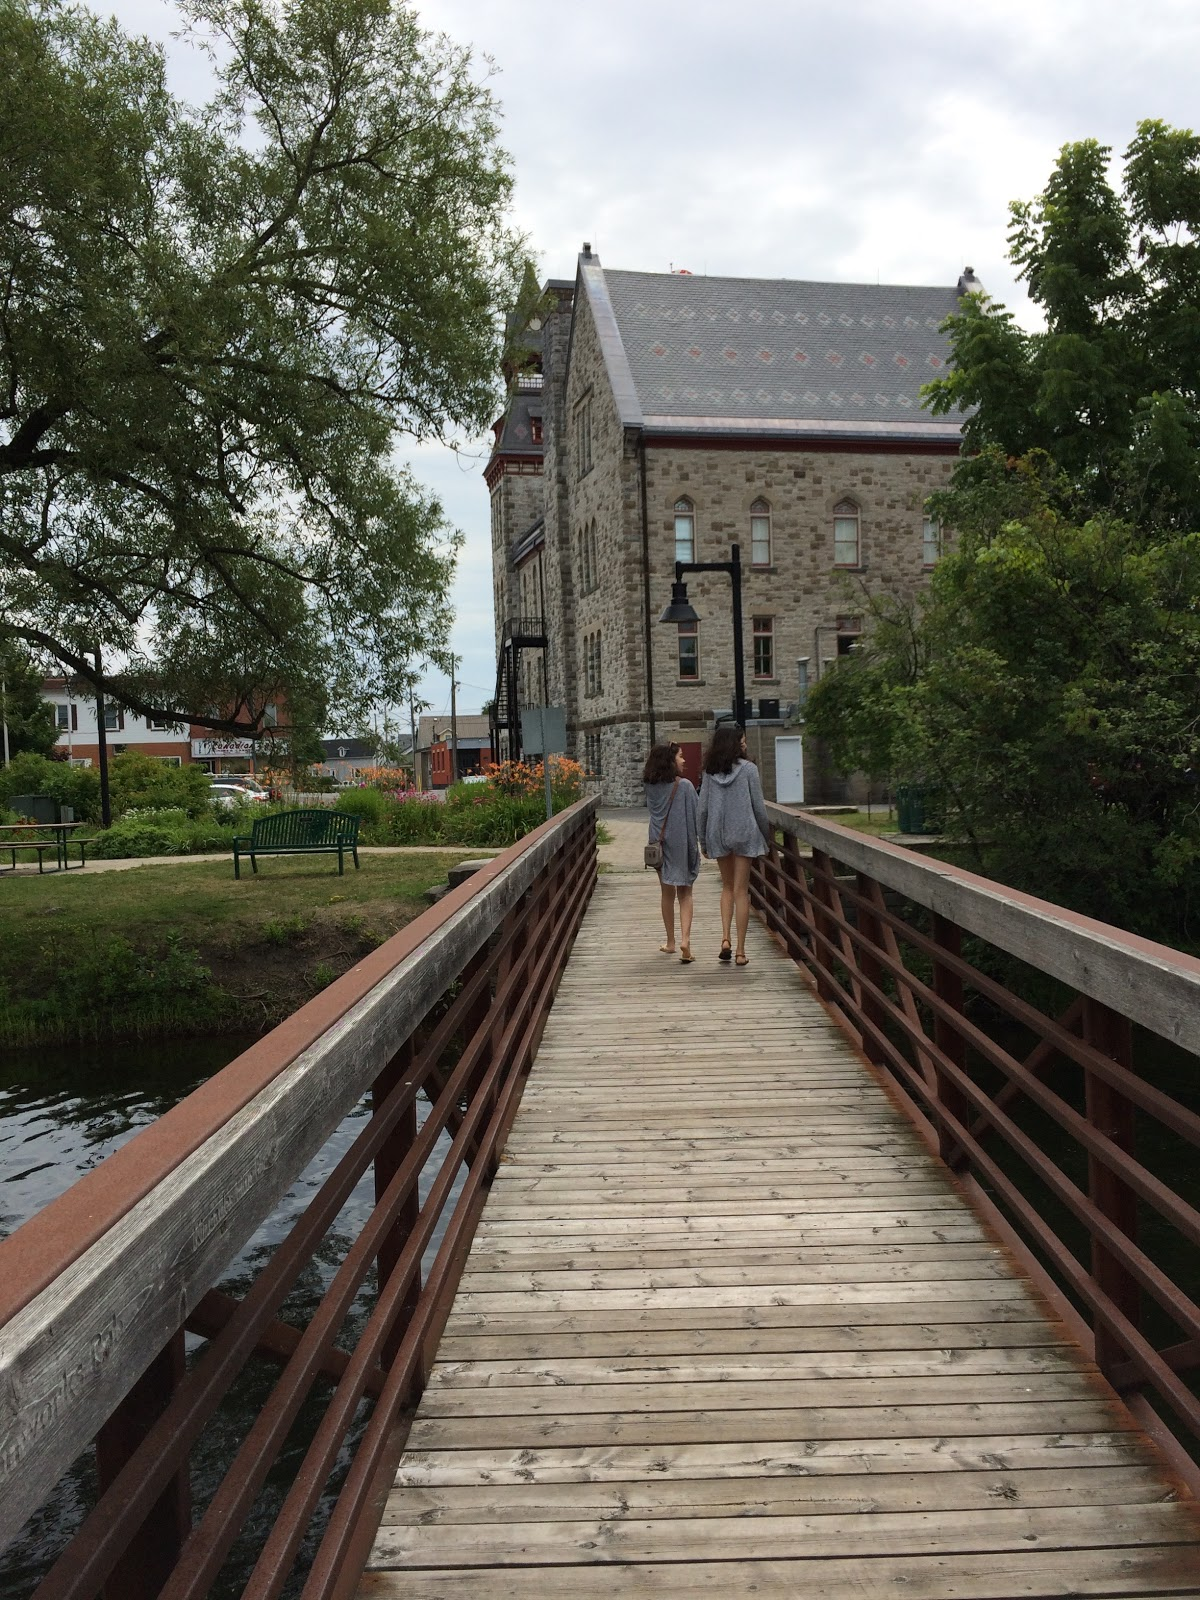 Boardwalk in Almonte, Ontario